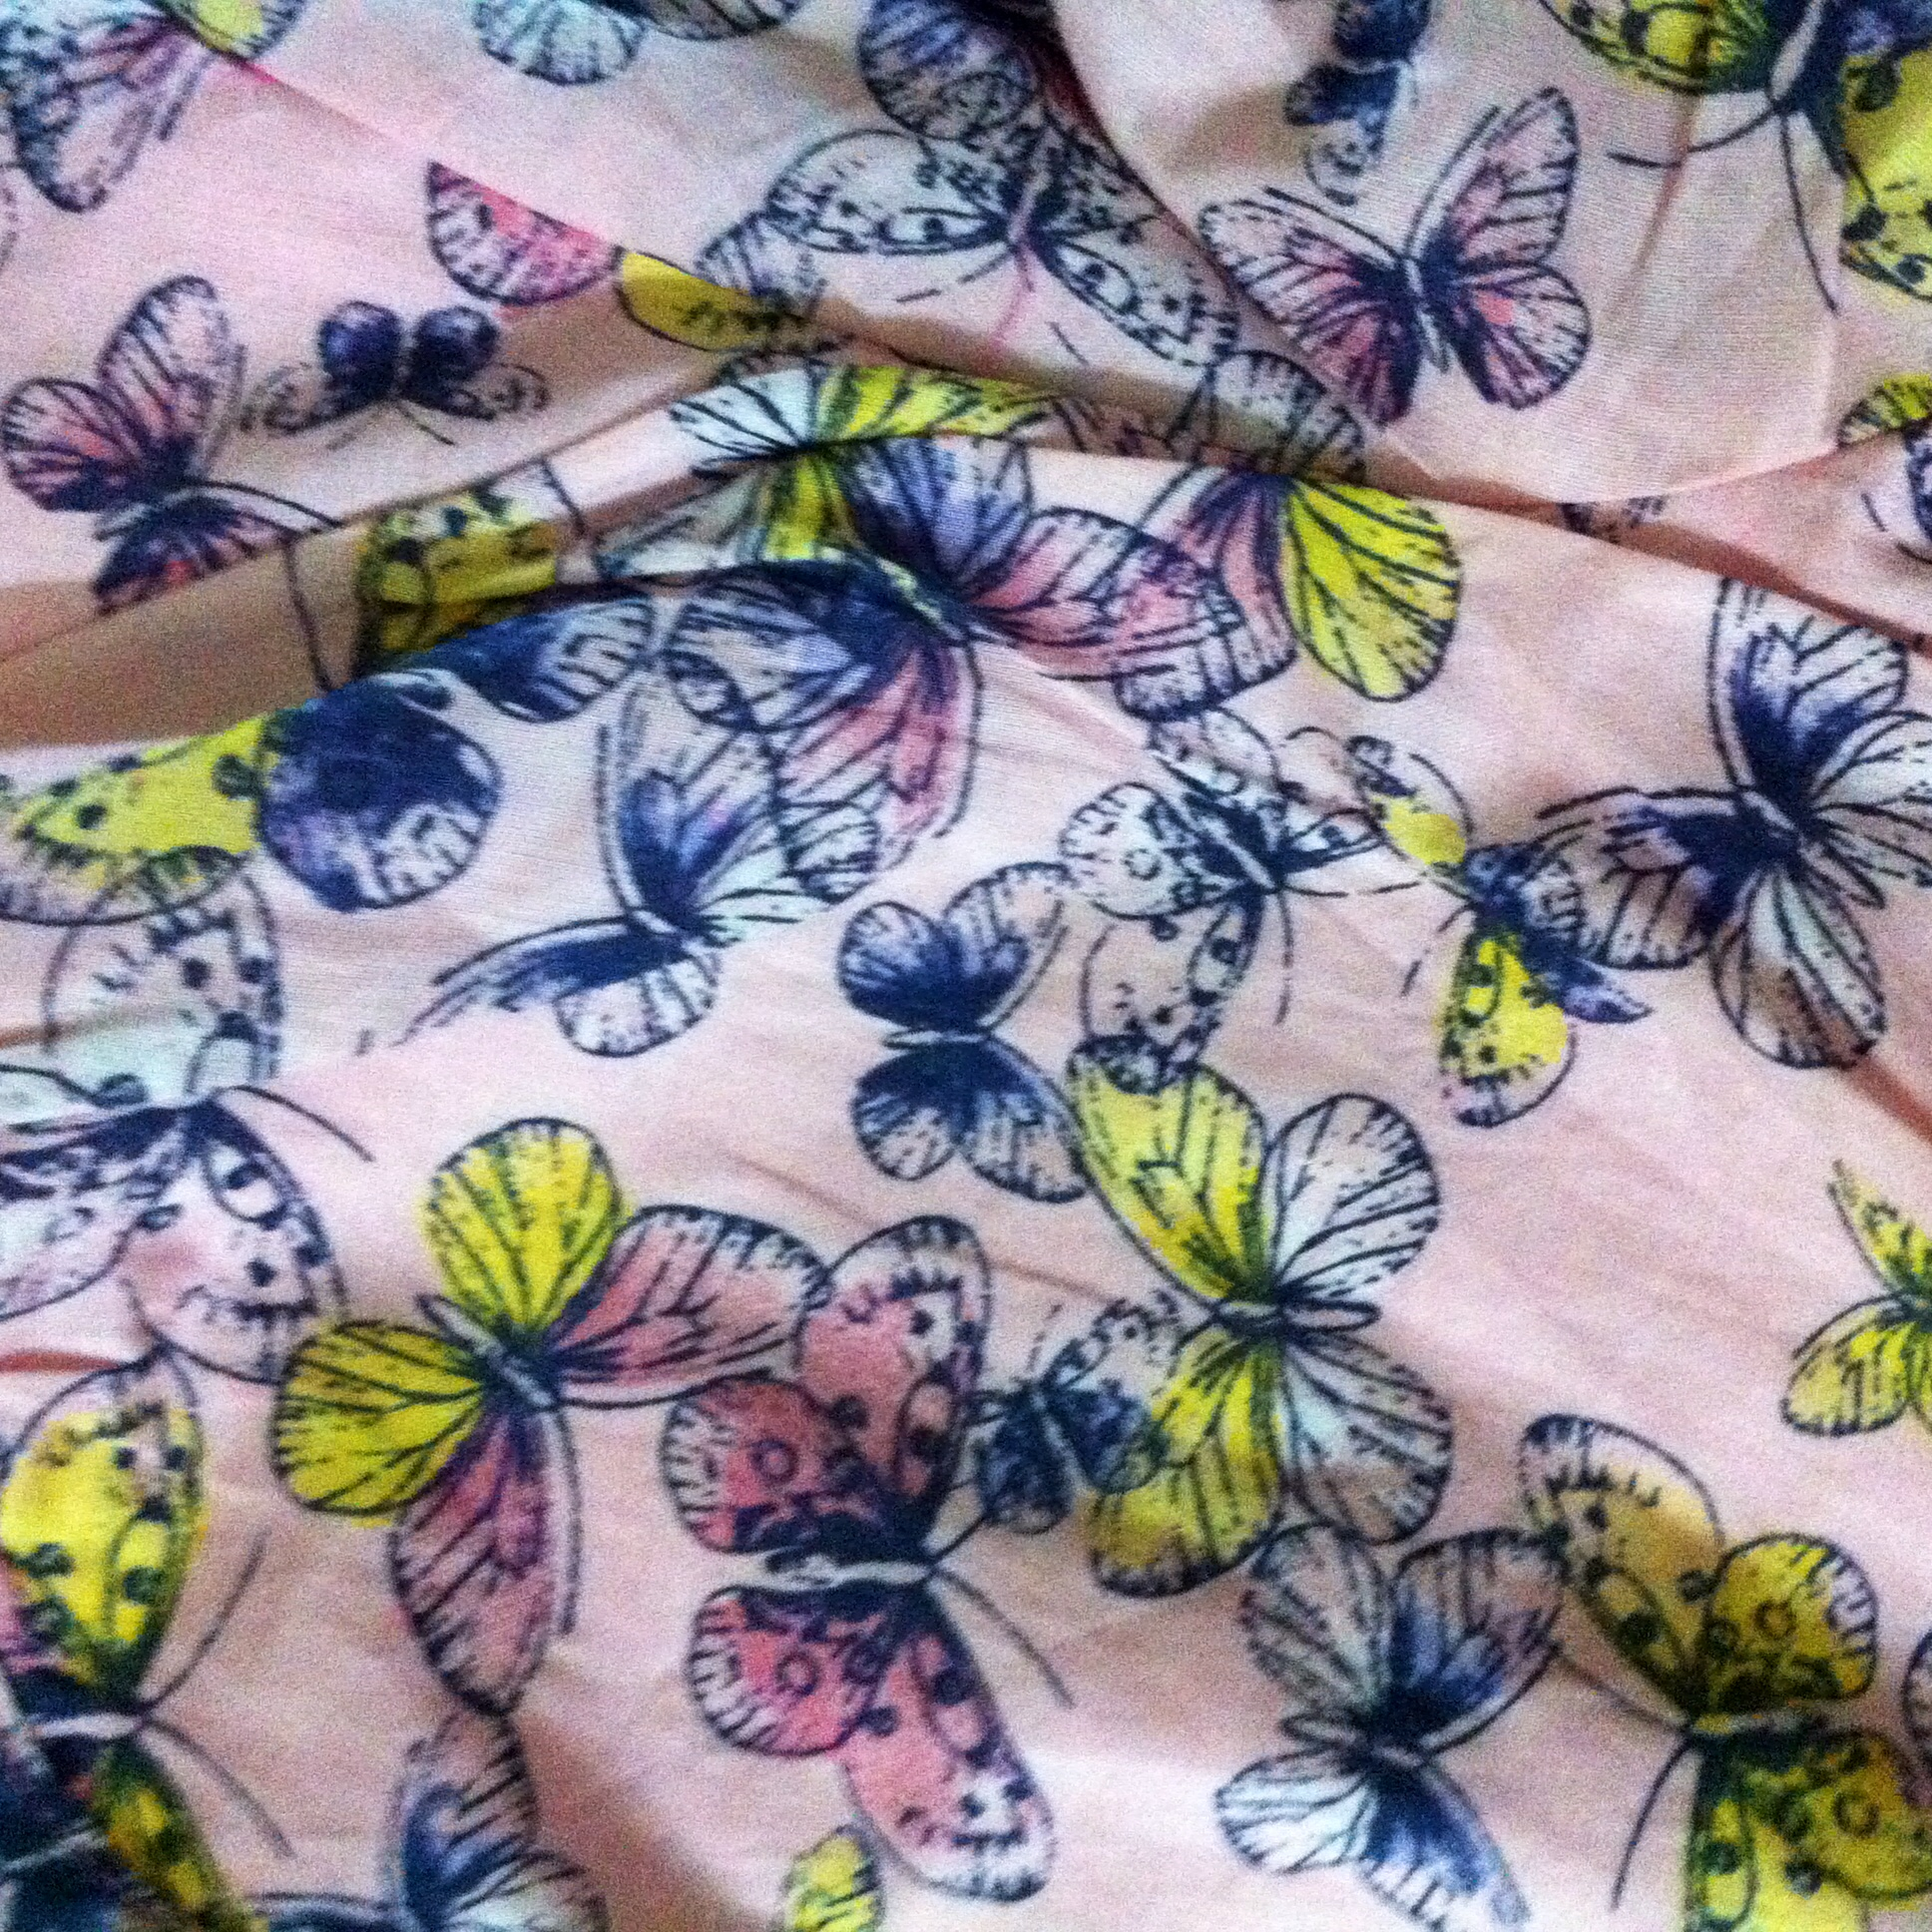 Close-up of the butterfly print